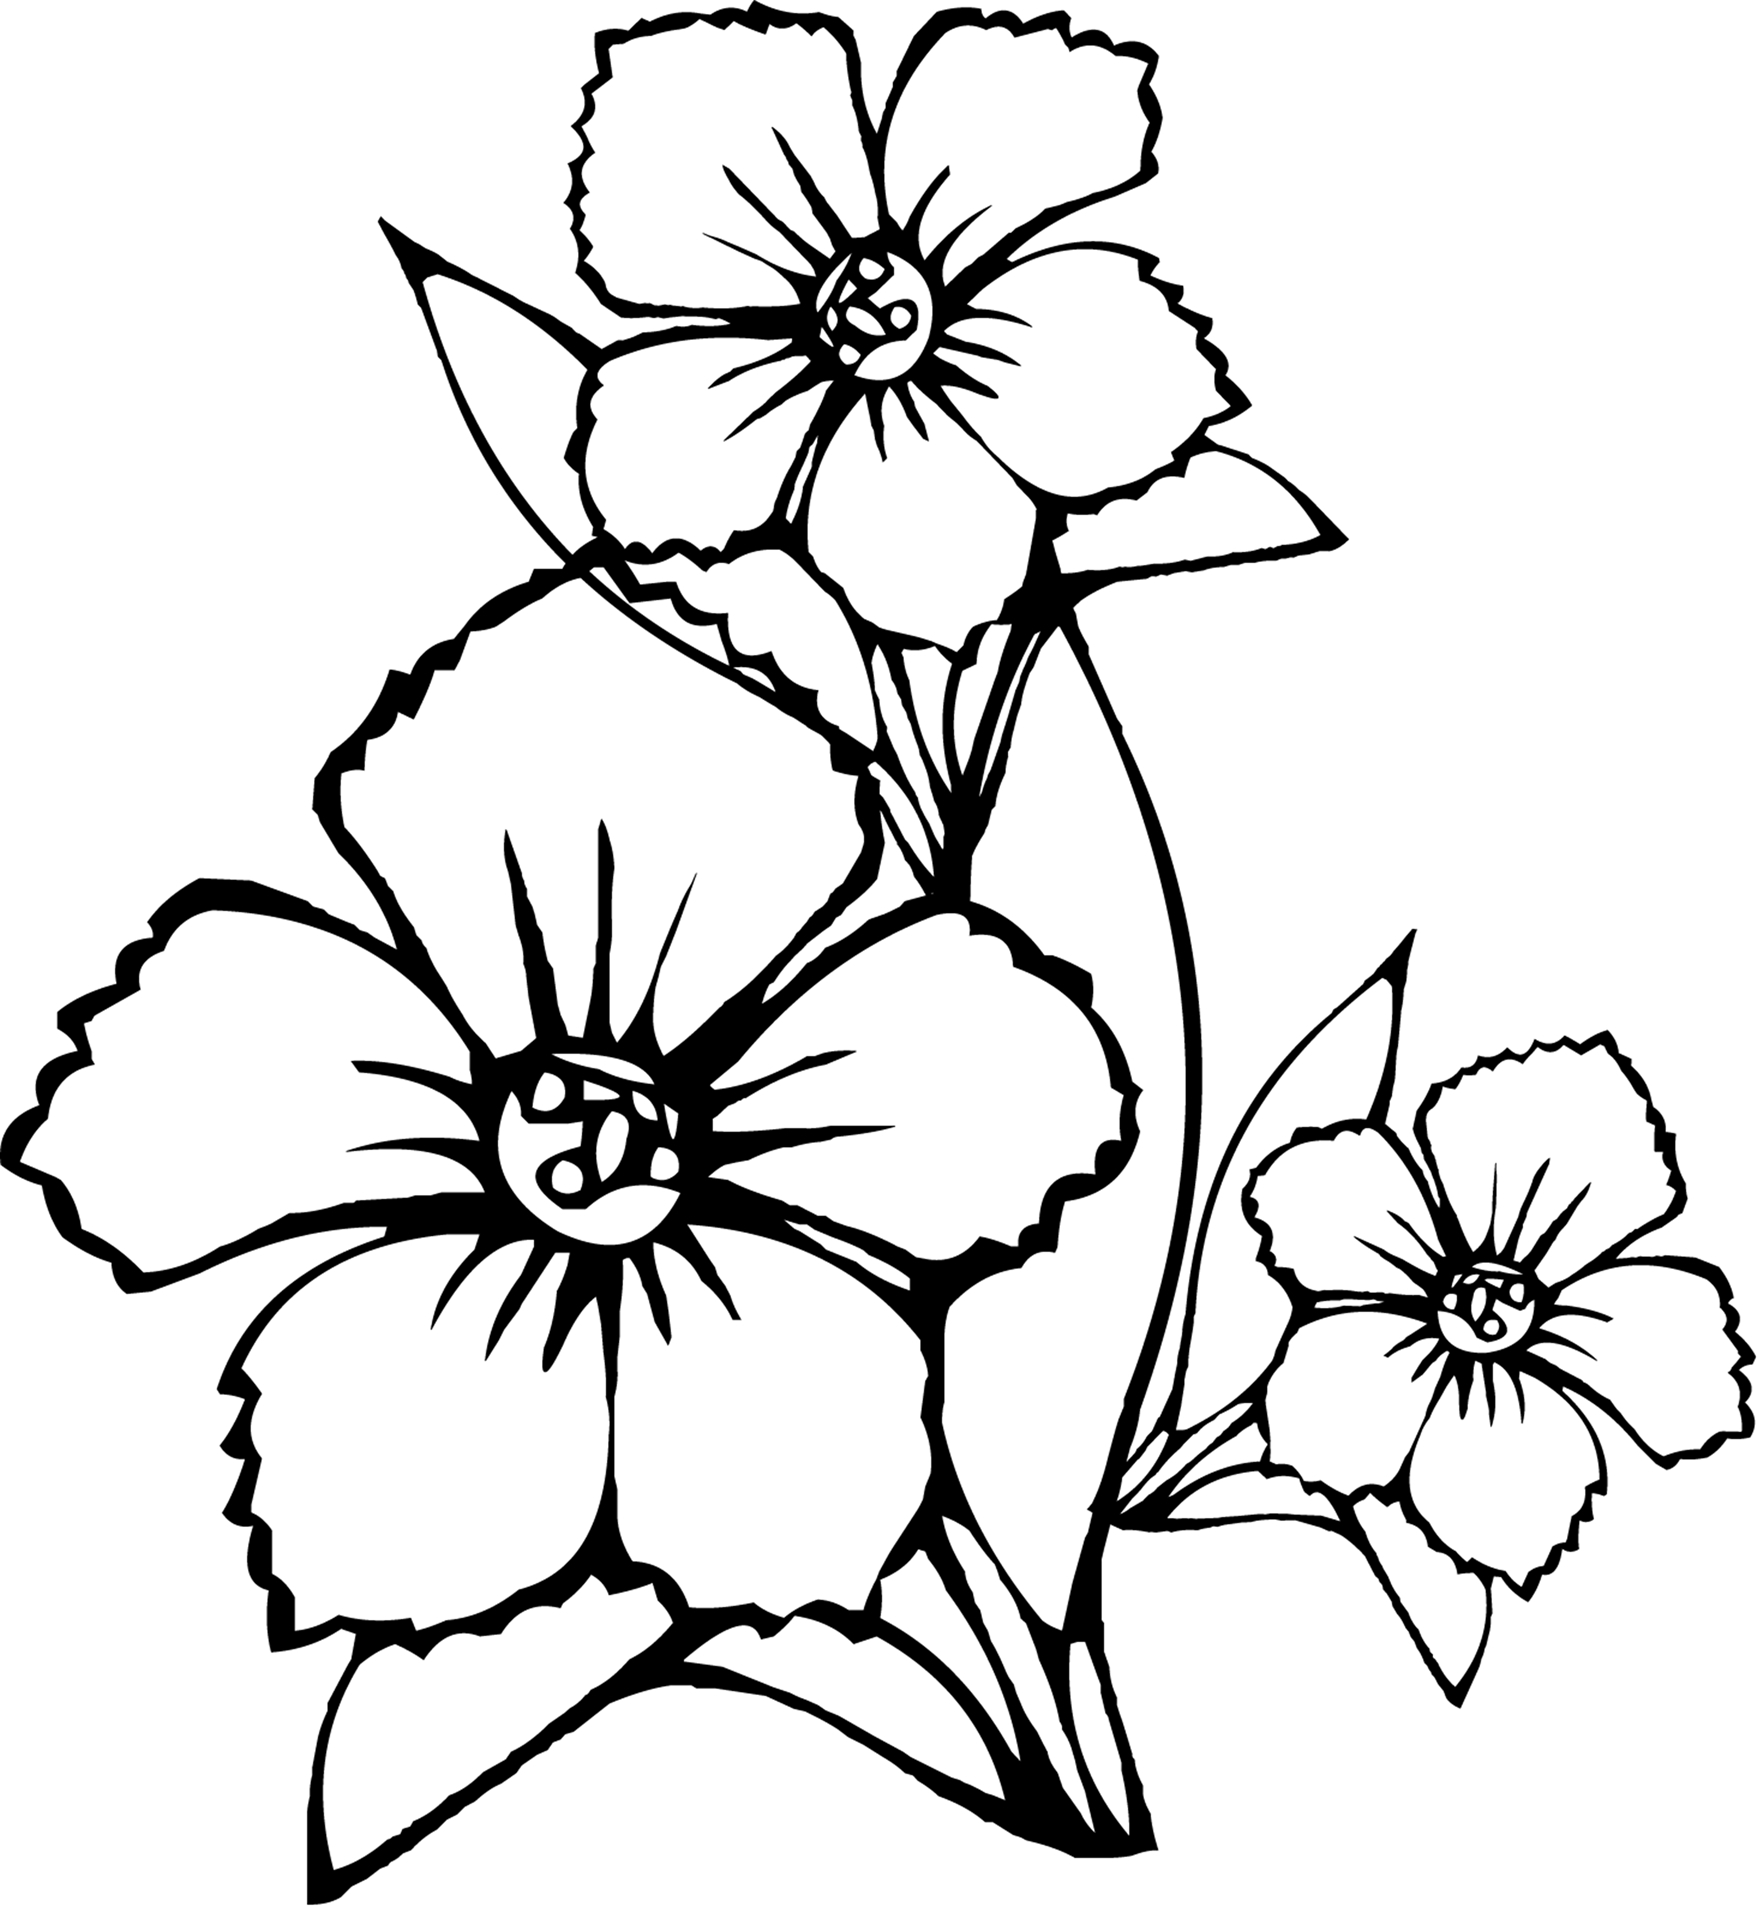 flowers coloring pages printable free printable flower coloring pages for kids cool2bkids coloring pages flowers printable